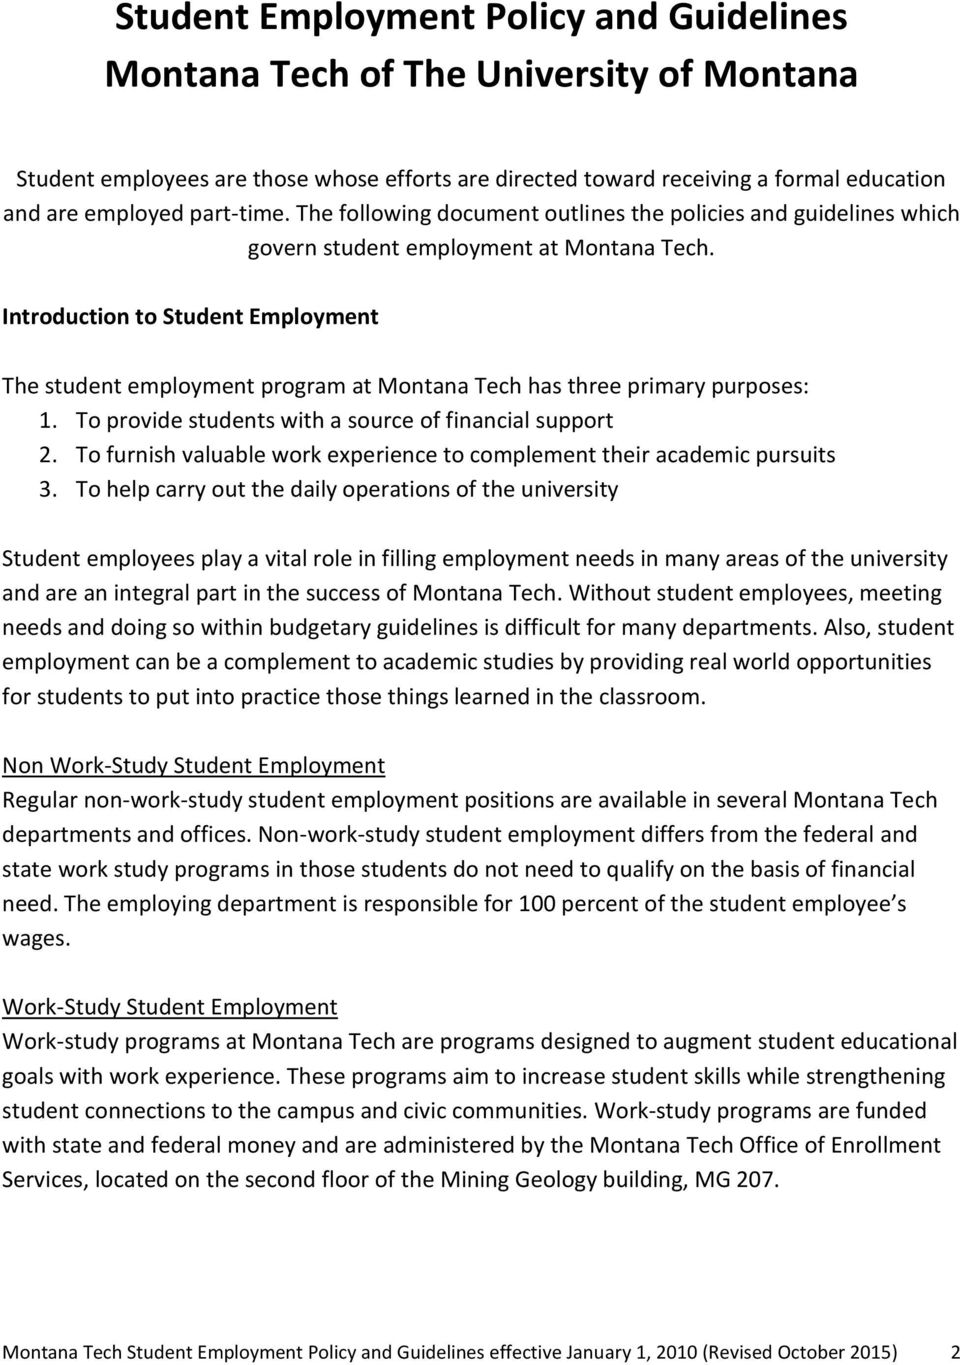 Introduction to Student Employment The student employment program at Montana Tech has three primary purposes: 1. To provide students with a source of financial support 2.